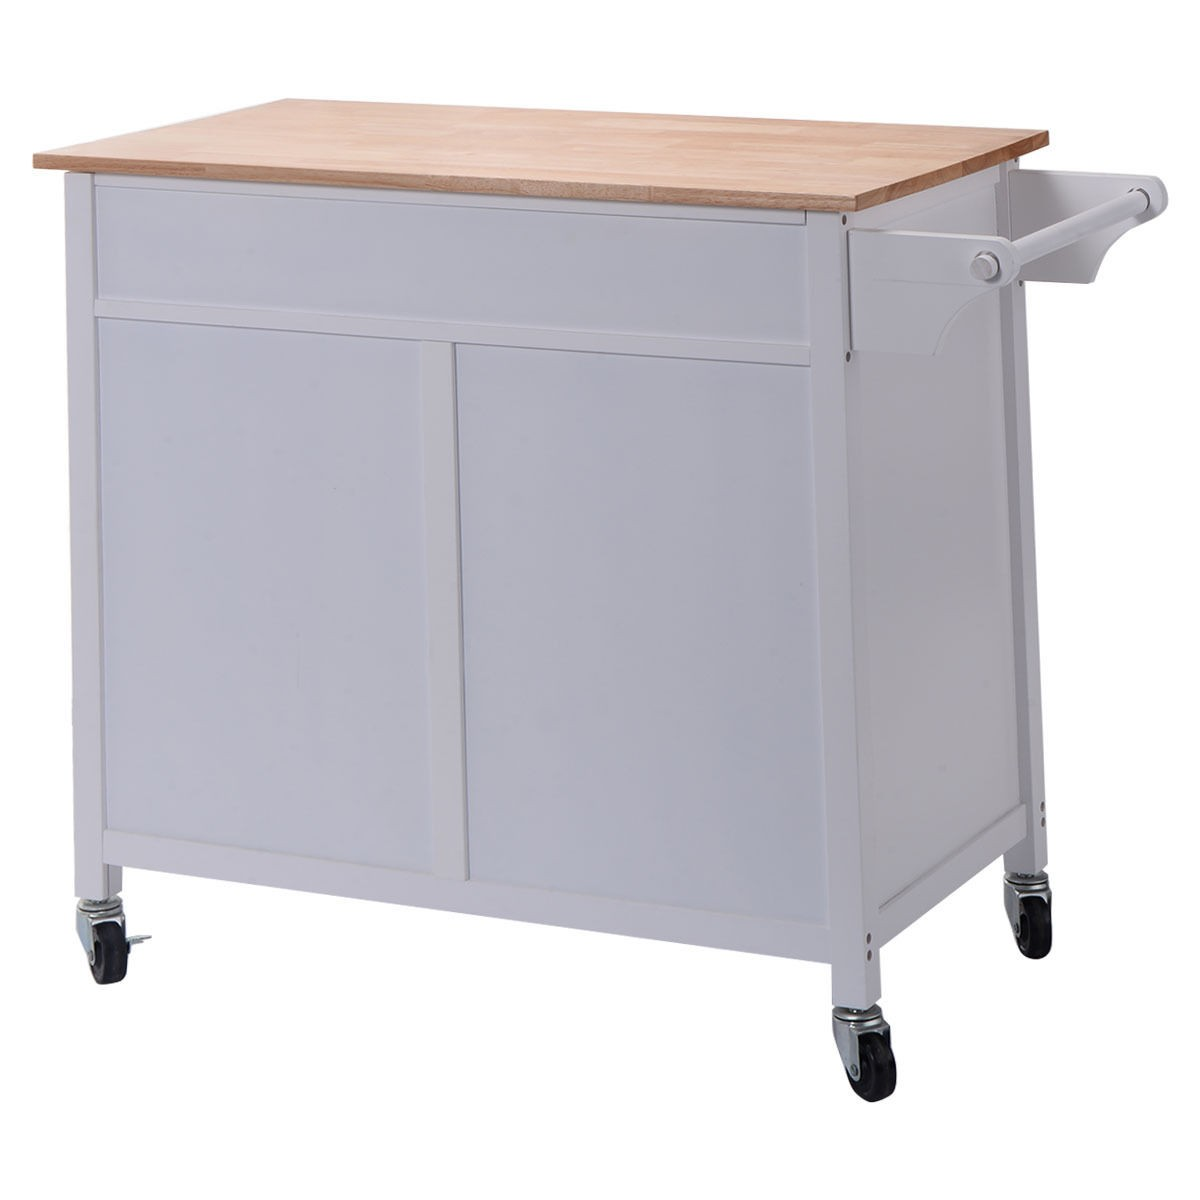 Utility Kitchen Cabinet Us Portable Kitchen Rolling Cart Wood Island Serving